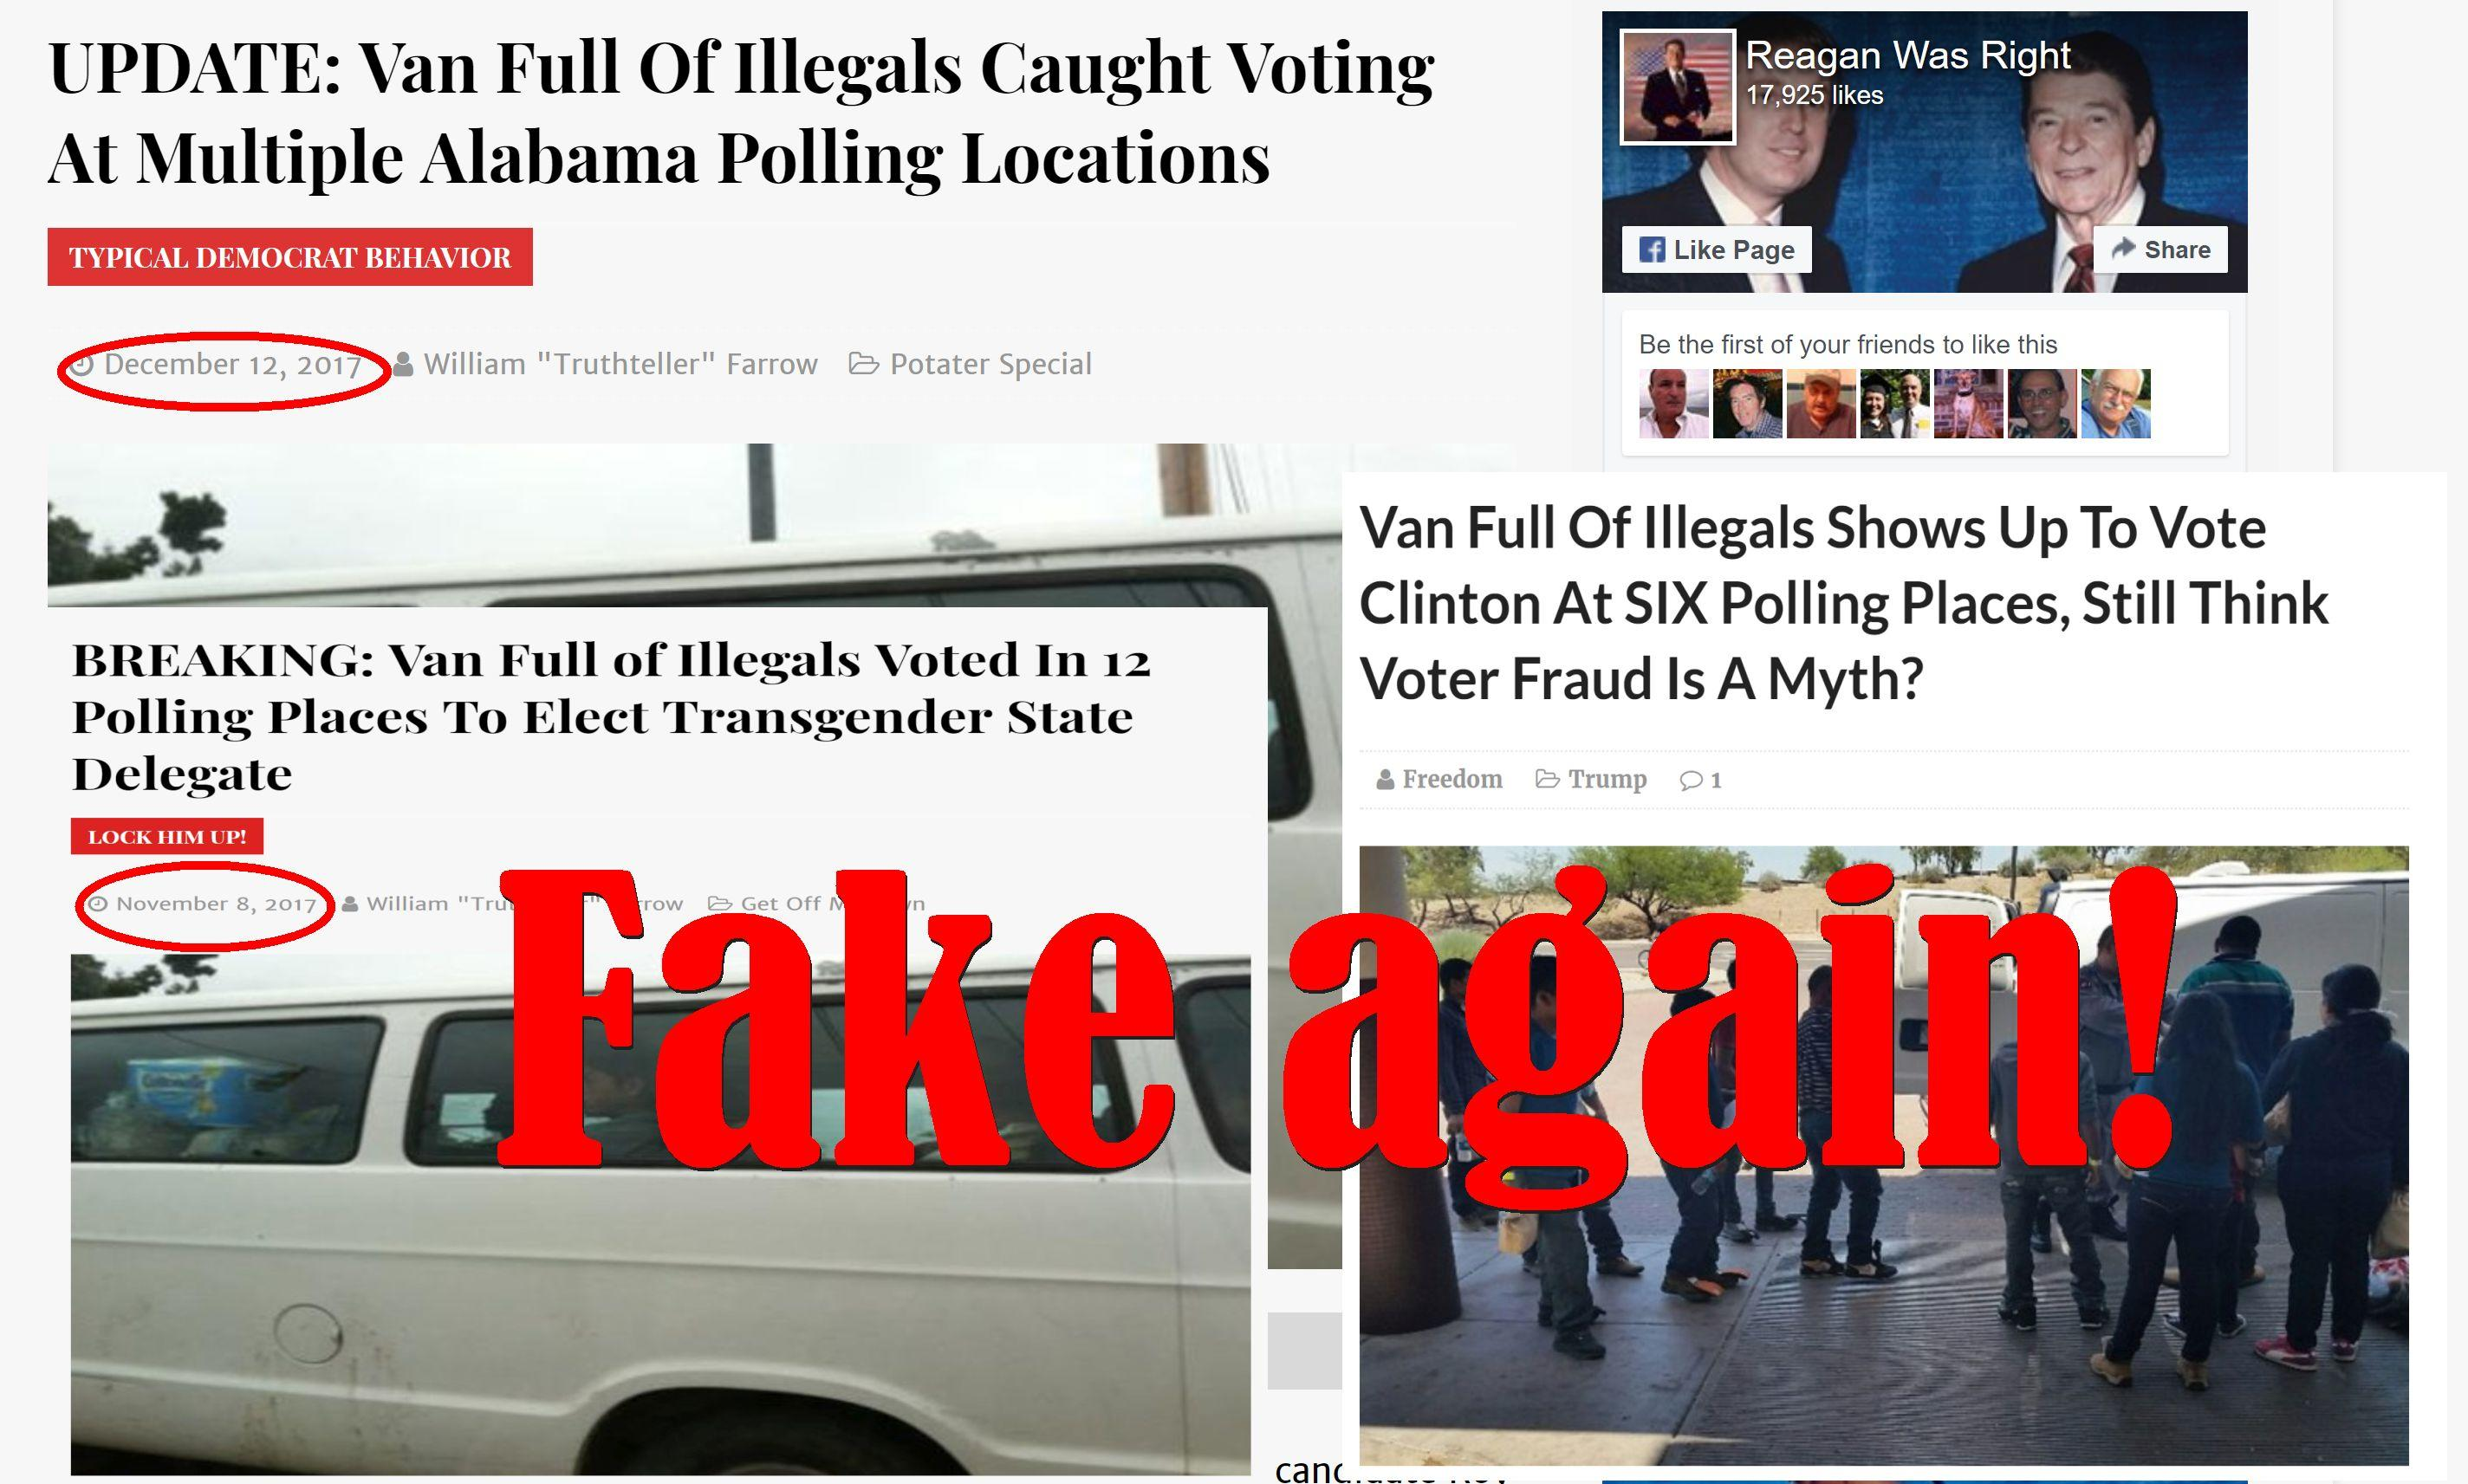 Fake News: Van Full Of Illegals NOT Caught Voting At Multiple Alabama Polling Locations